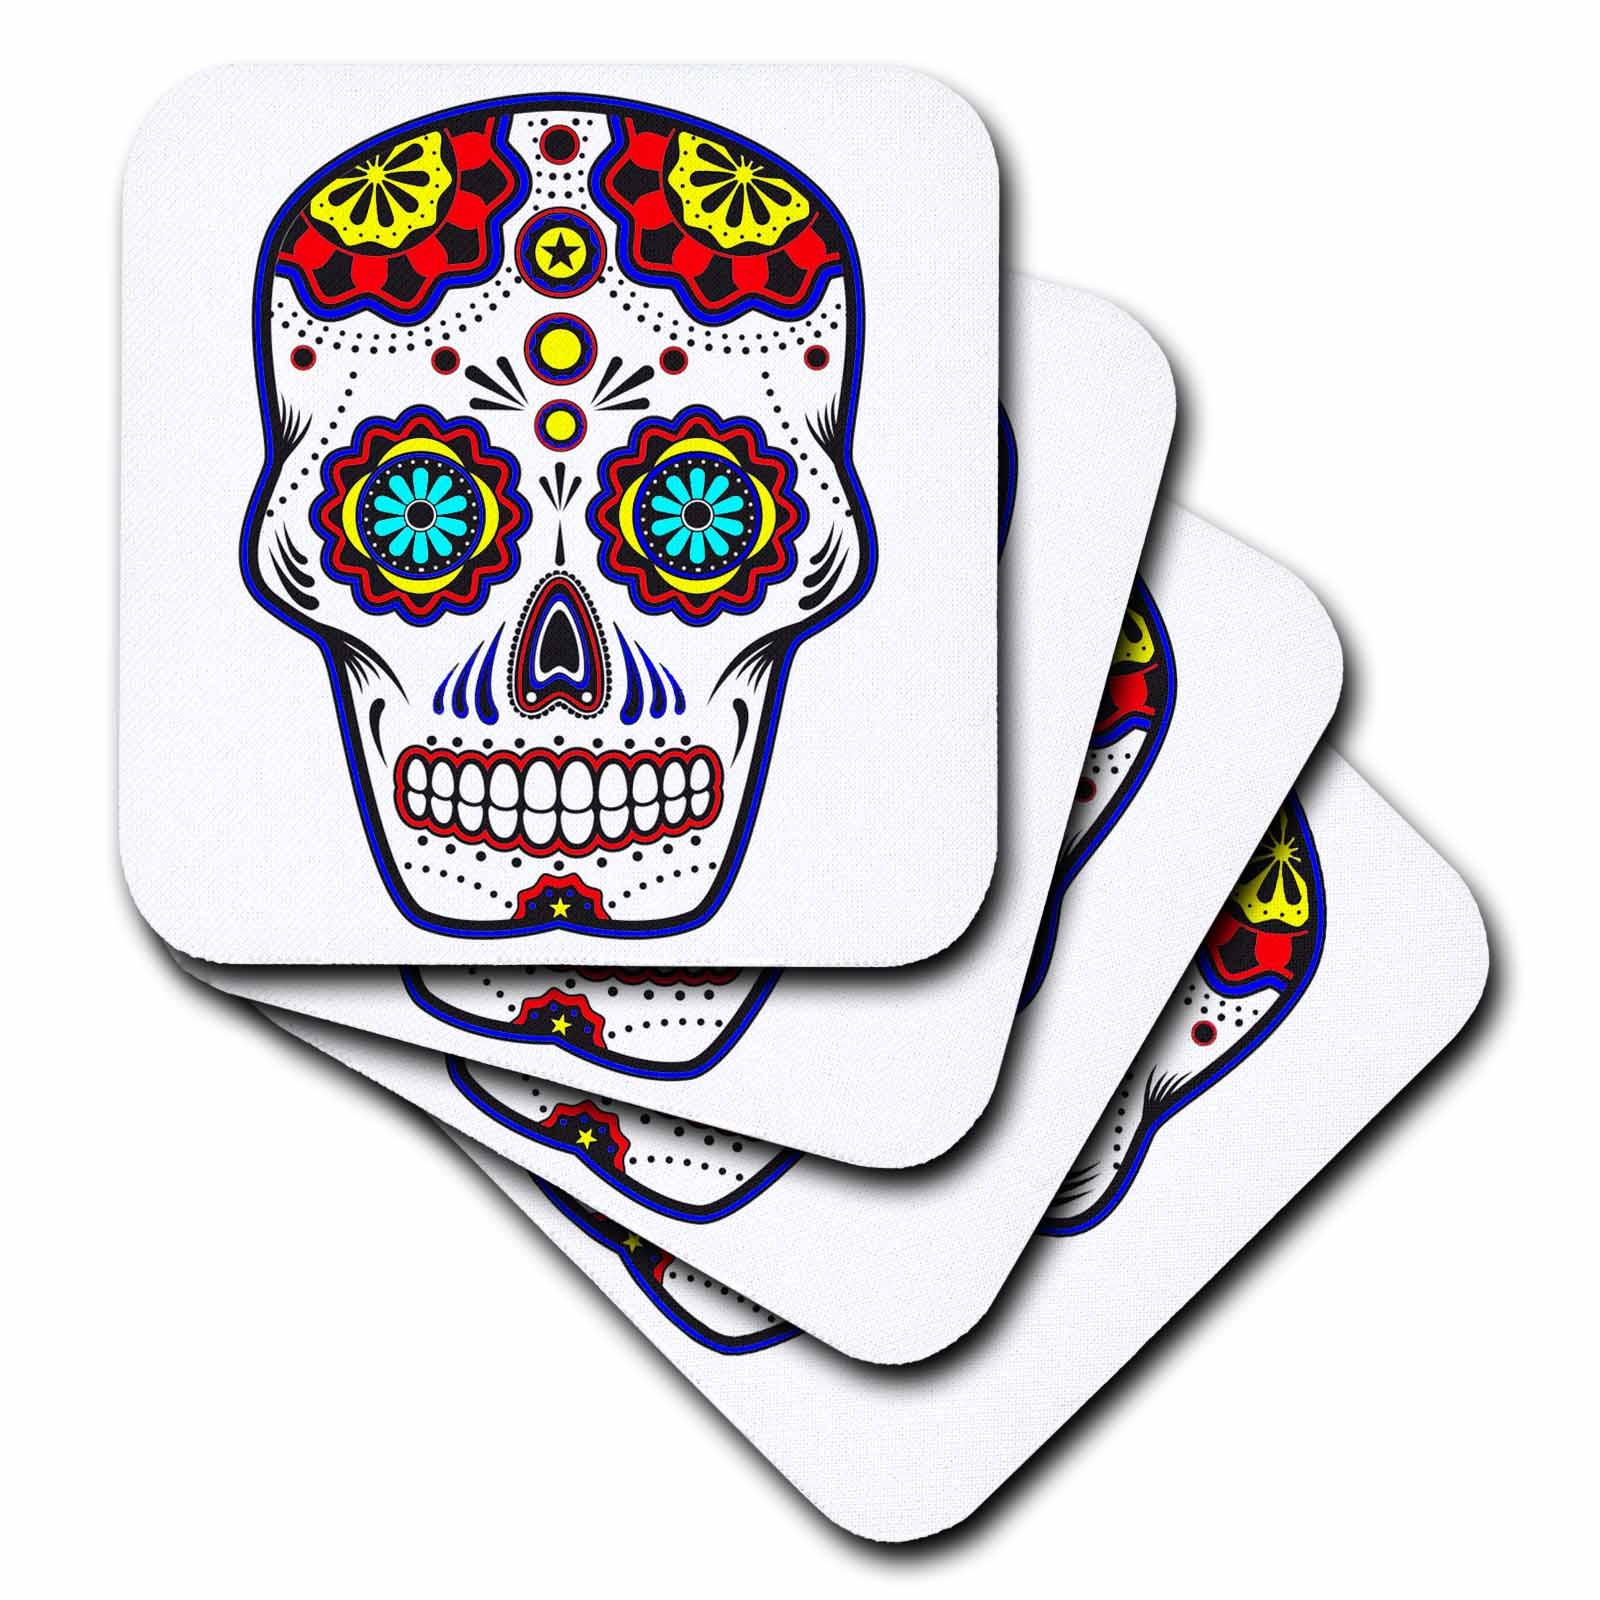 3dRose Sugar skull, Red, blue and yellow, Ceramic Tile Coasters, set of 4 by 3dRose